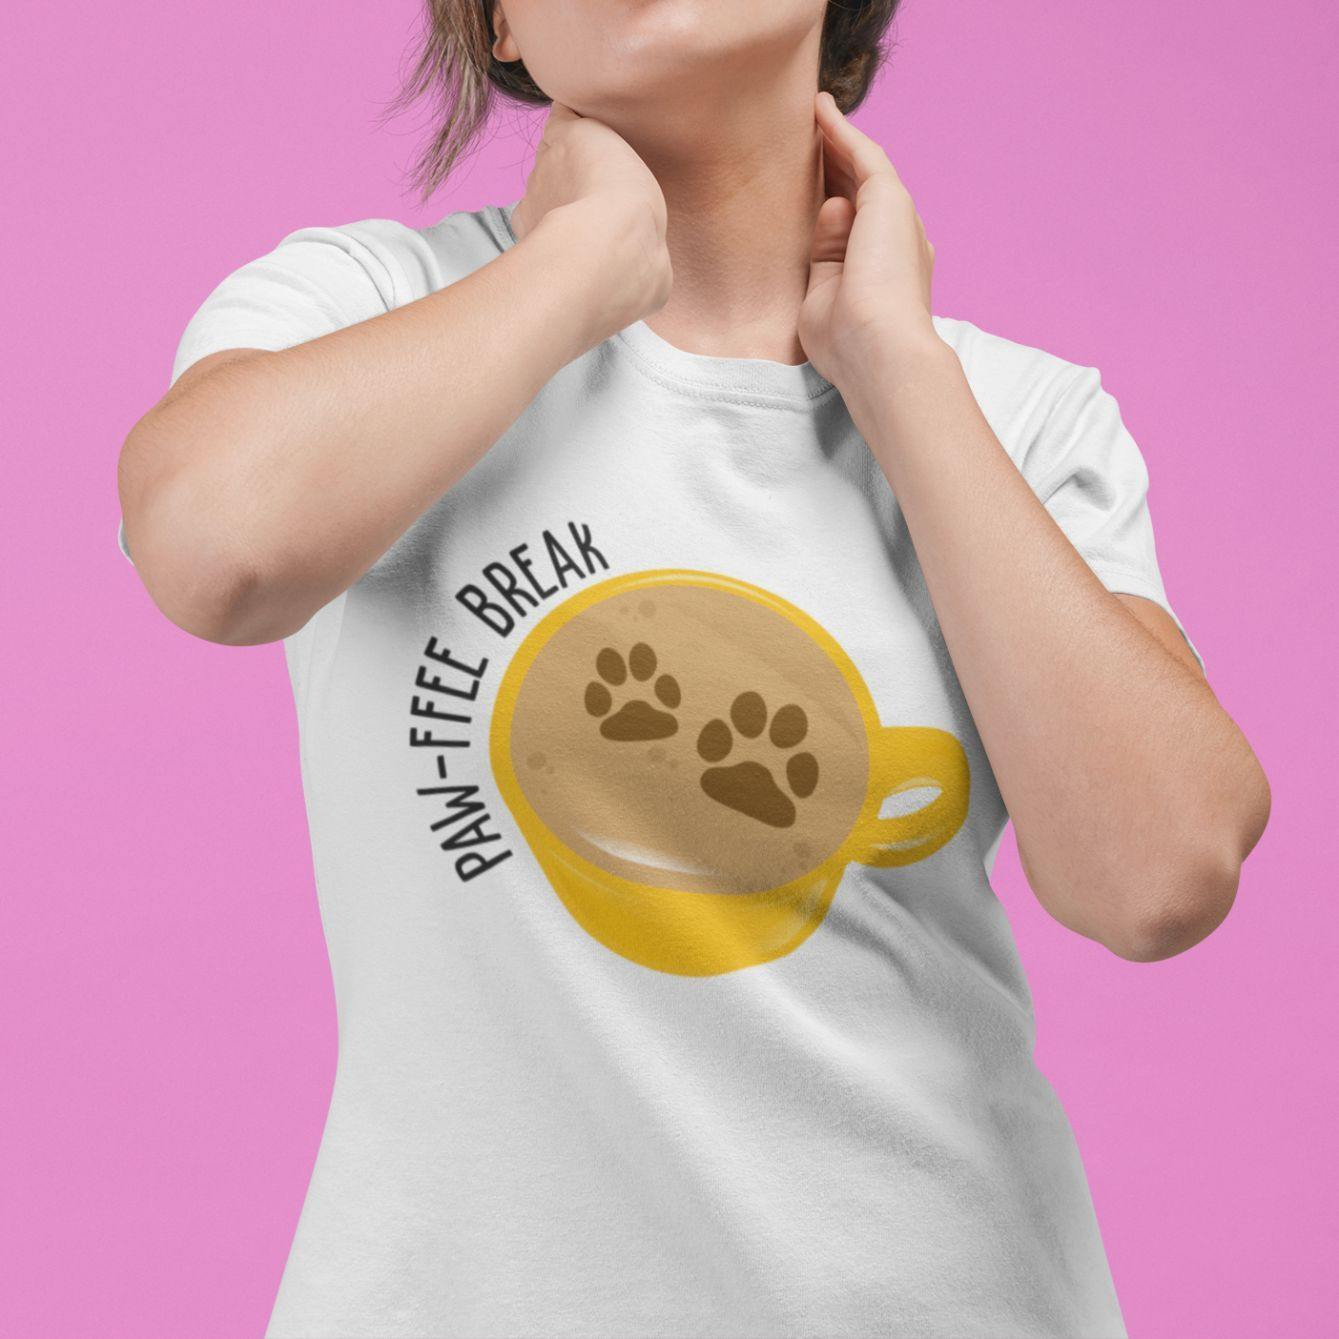 Pawffee Break - Women's Tshirt - Daily Suvichar Store